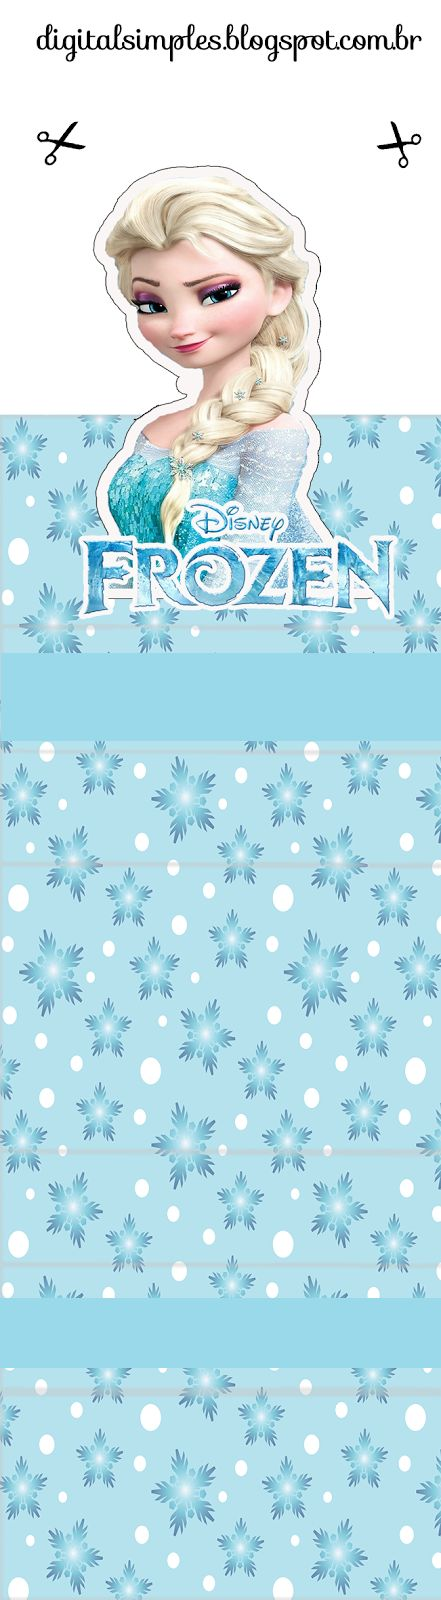 Frozen: Free Printable Original Nuggets or Gum Wrappers.